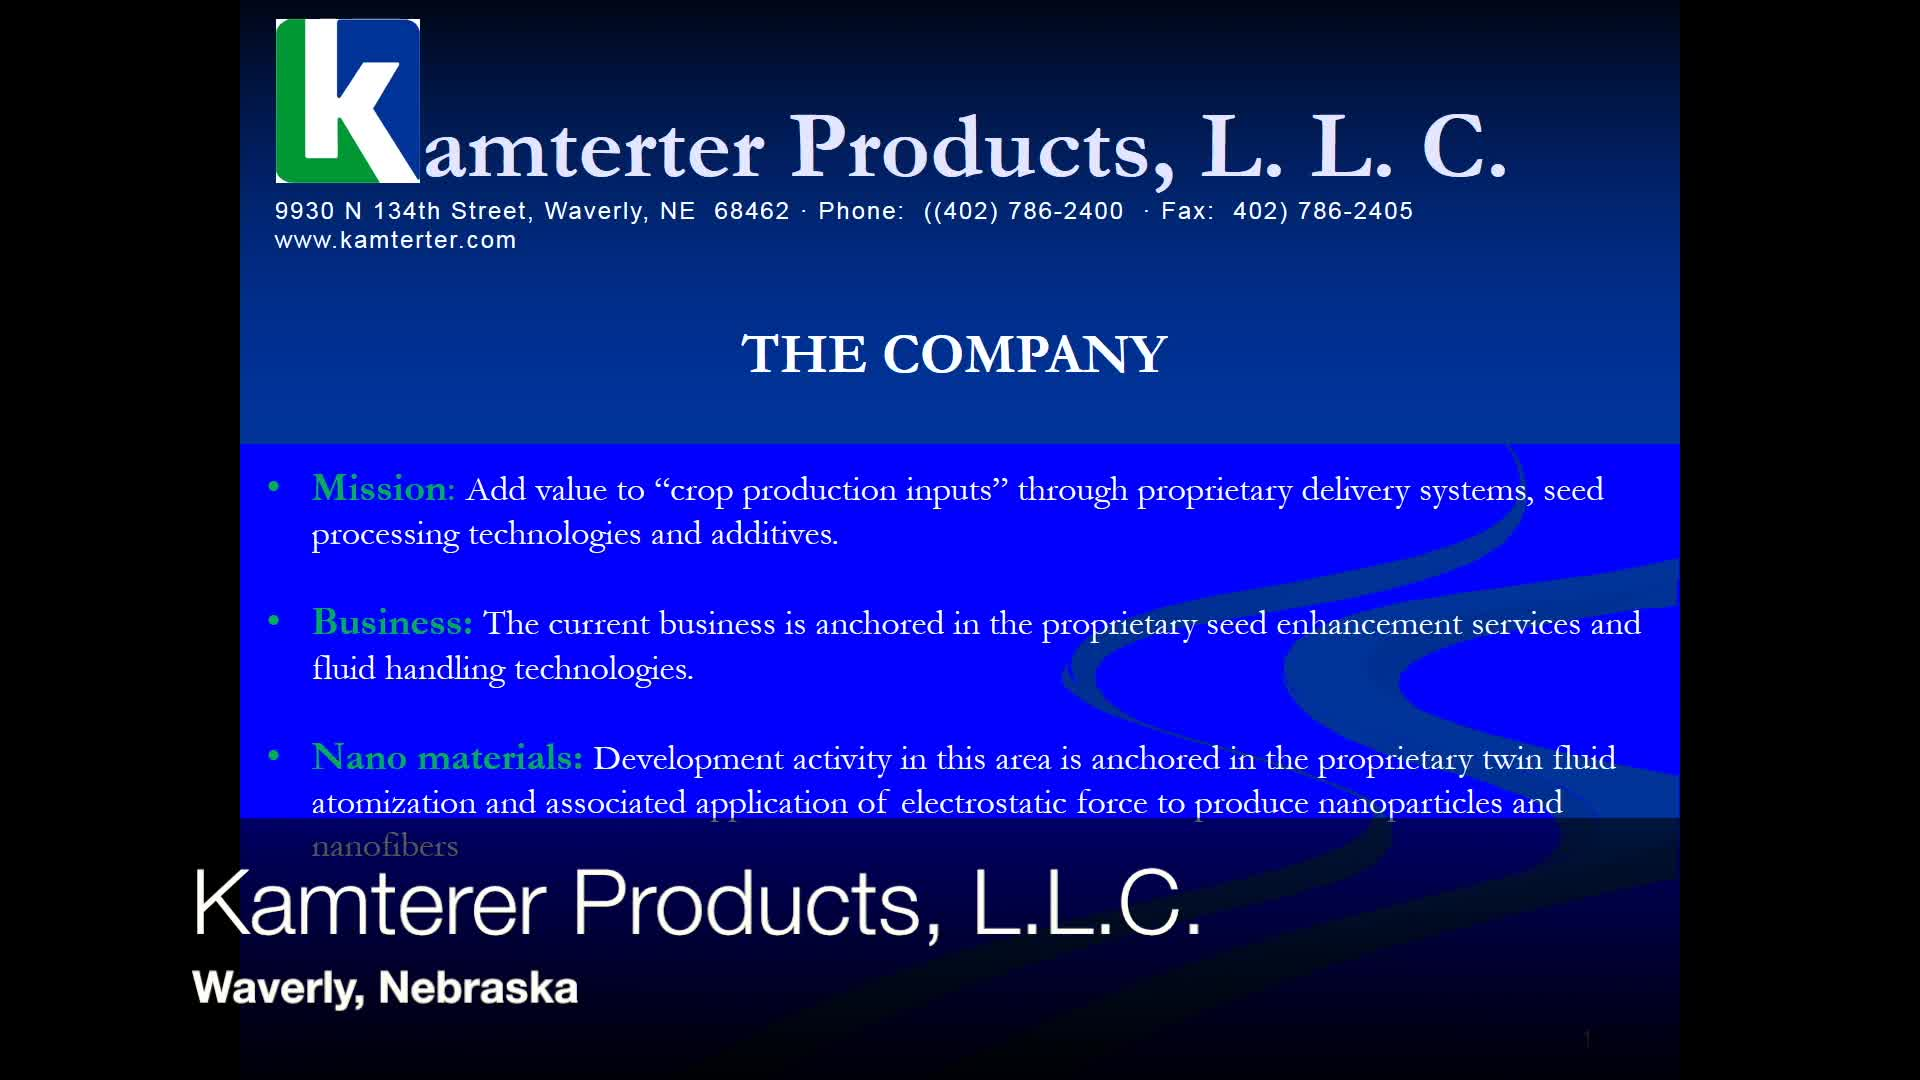 Kamterer Products on Nanotechnology